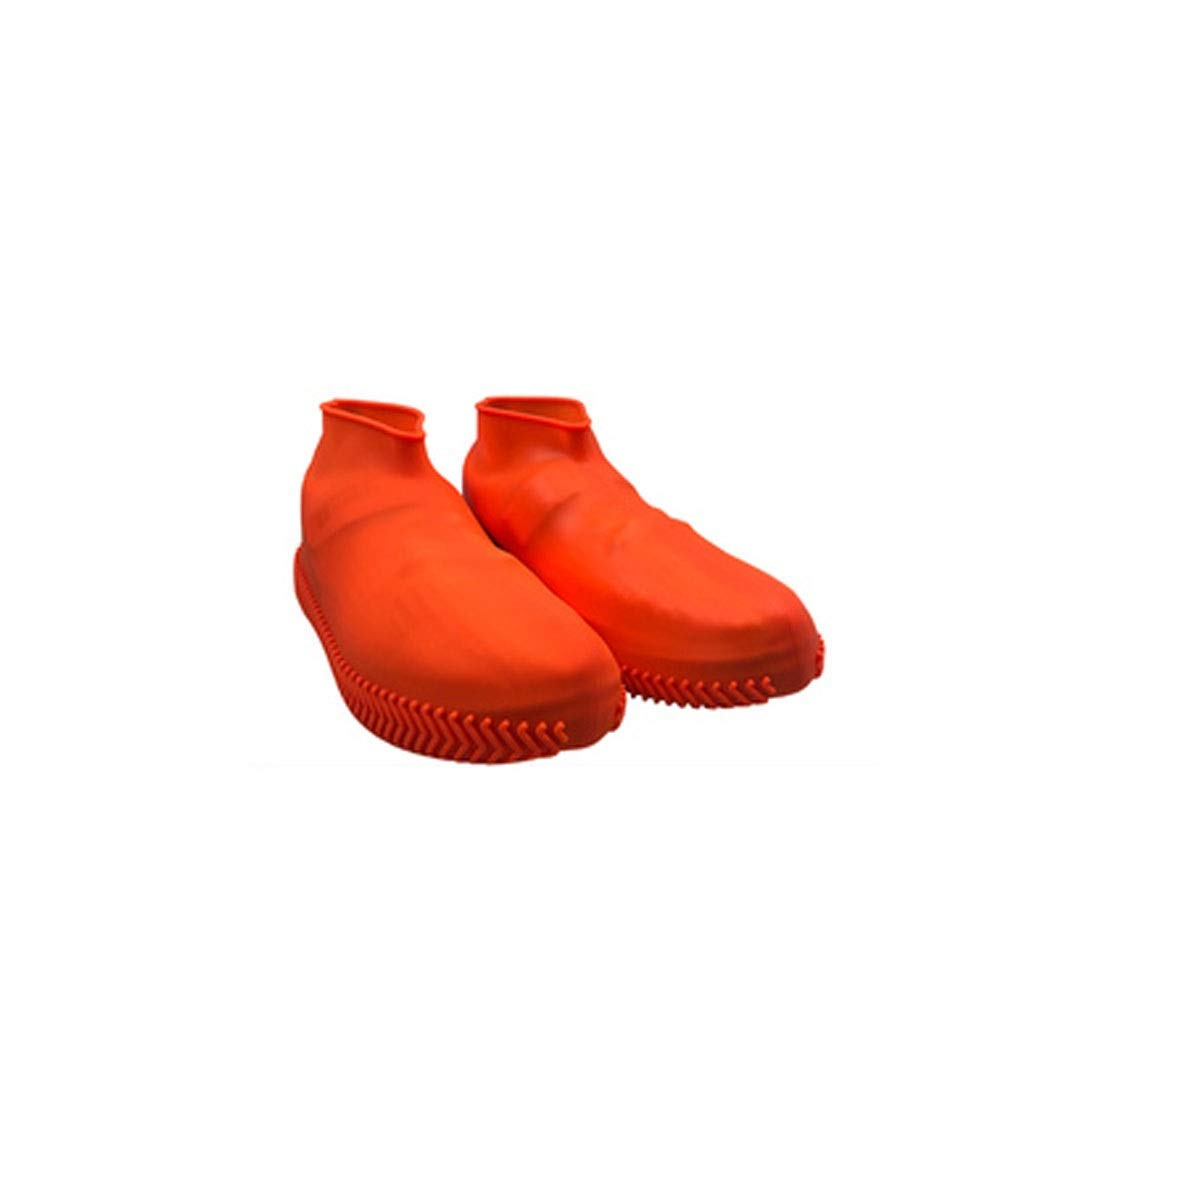 WUHUIZHENJINGXIAOBU Waterproof Shoe Cover, rain-Proof Water-Like Rubber wear-Resistant Shoe Bag, Free to Choose from a Variety of Colors Shoe Covers That can be Worn on Rainy Days,